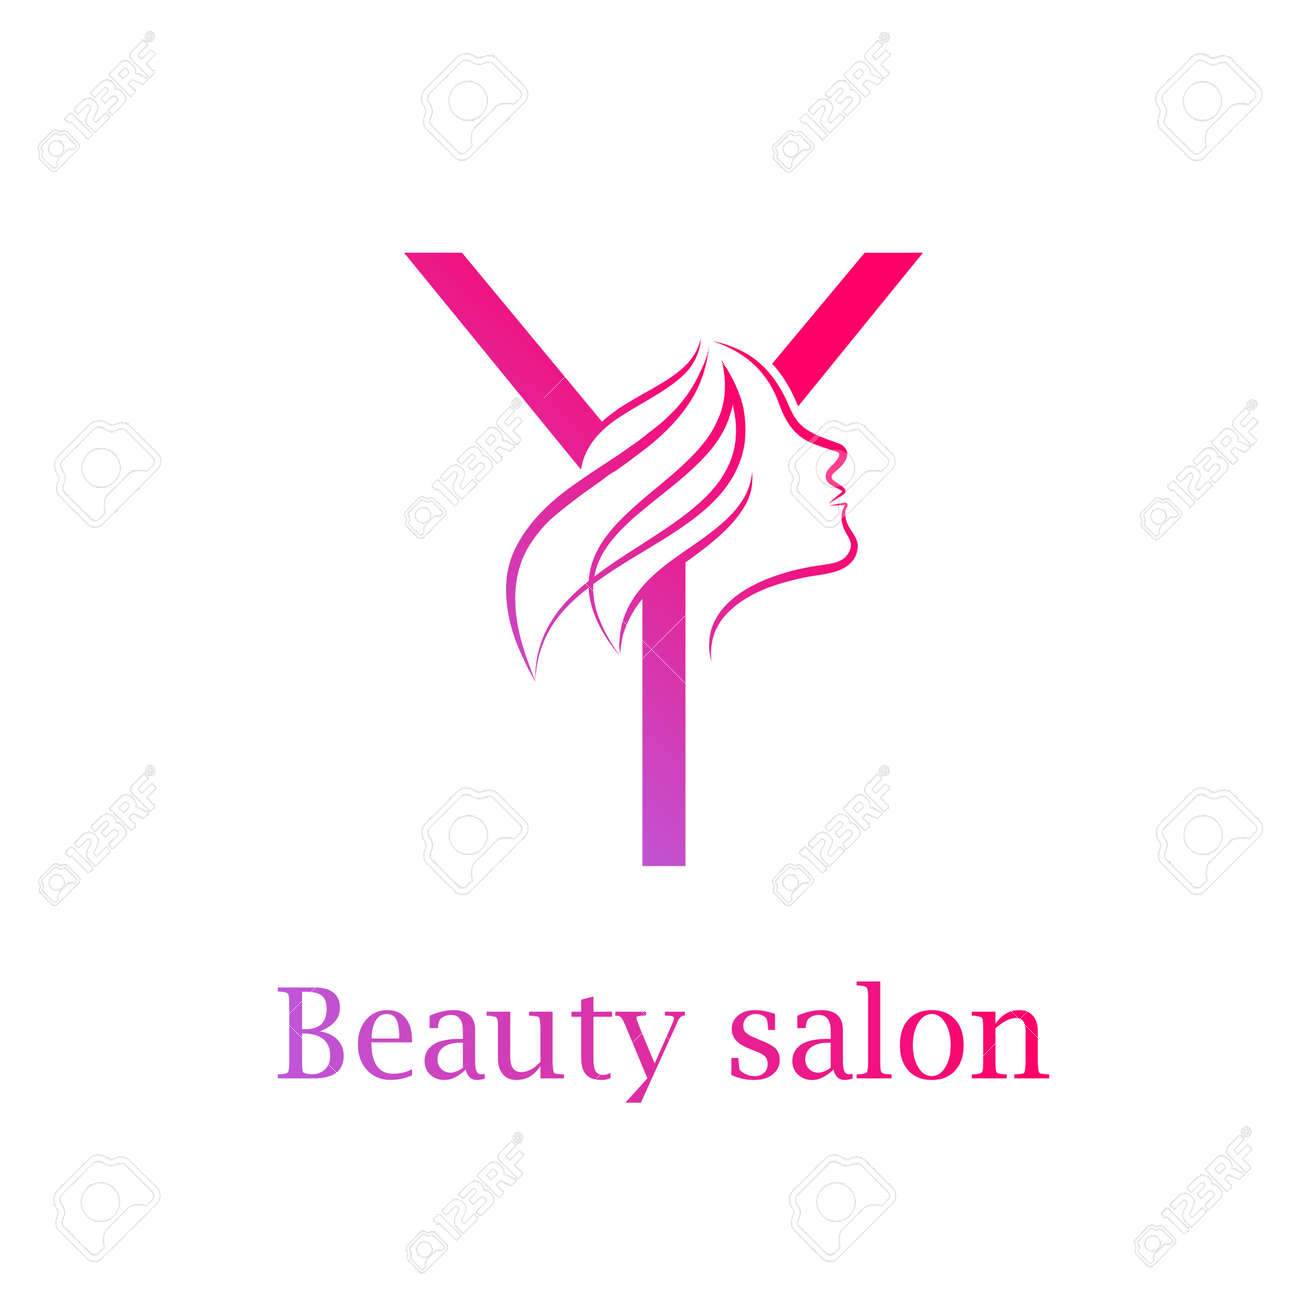 Abstract Letter Y Logobeauty Salon Logo Design Template Royalty